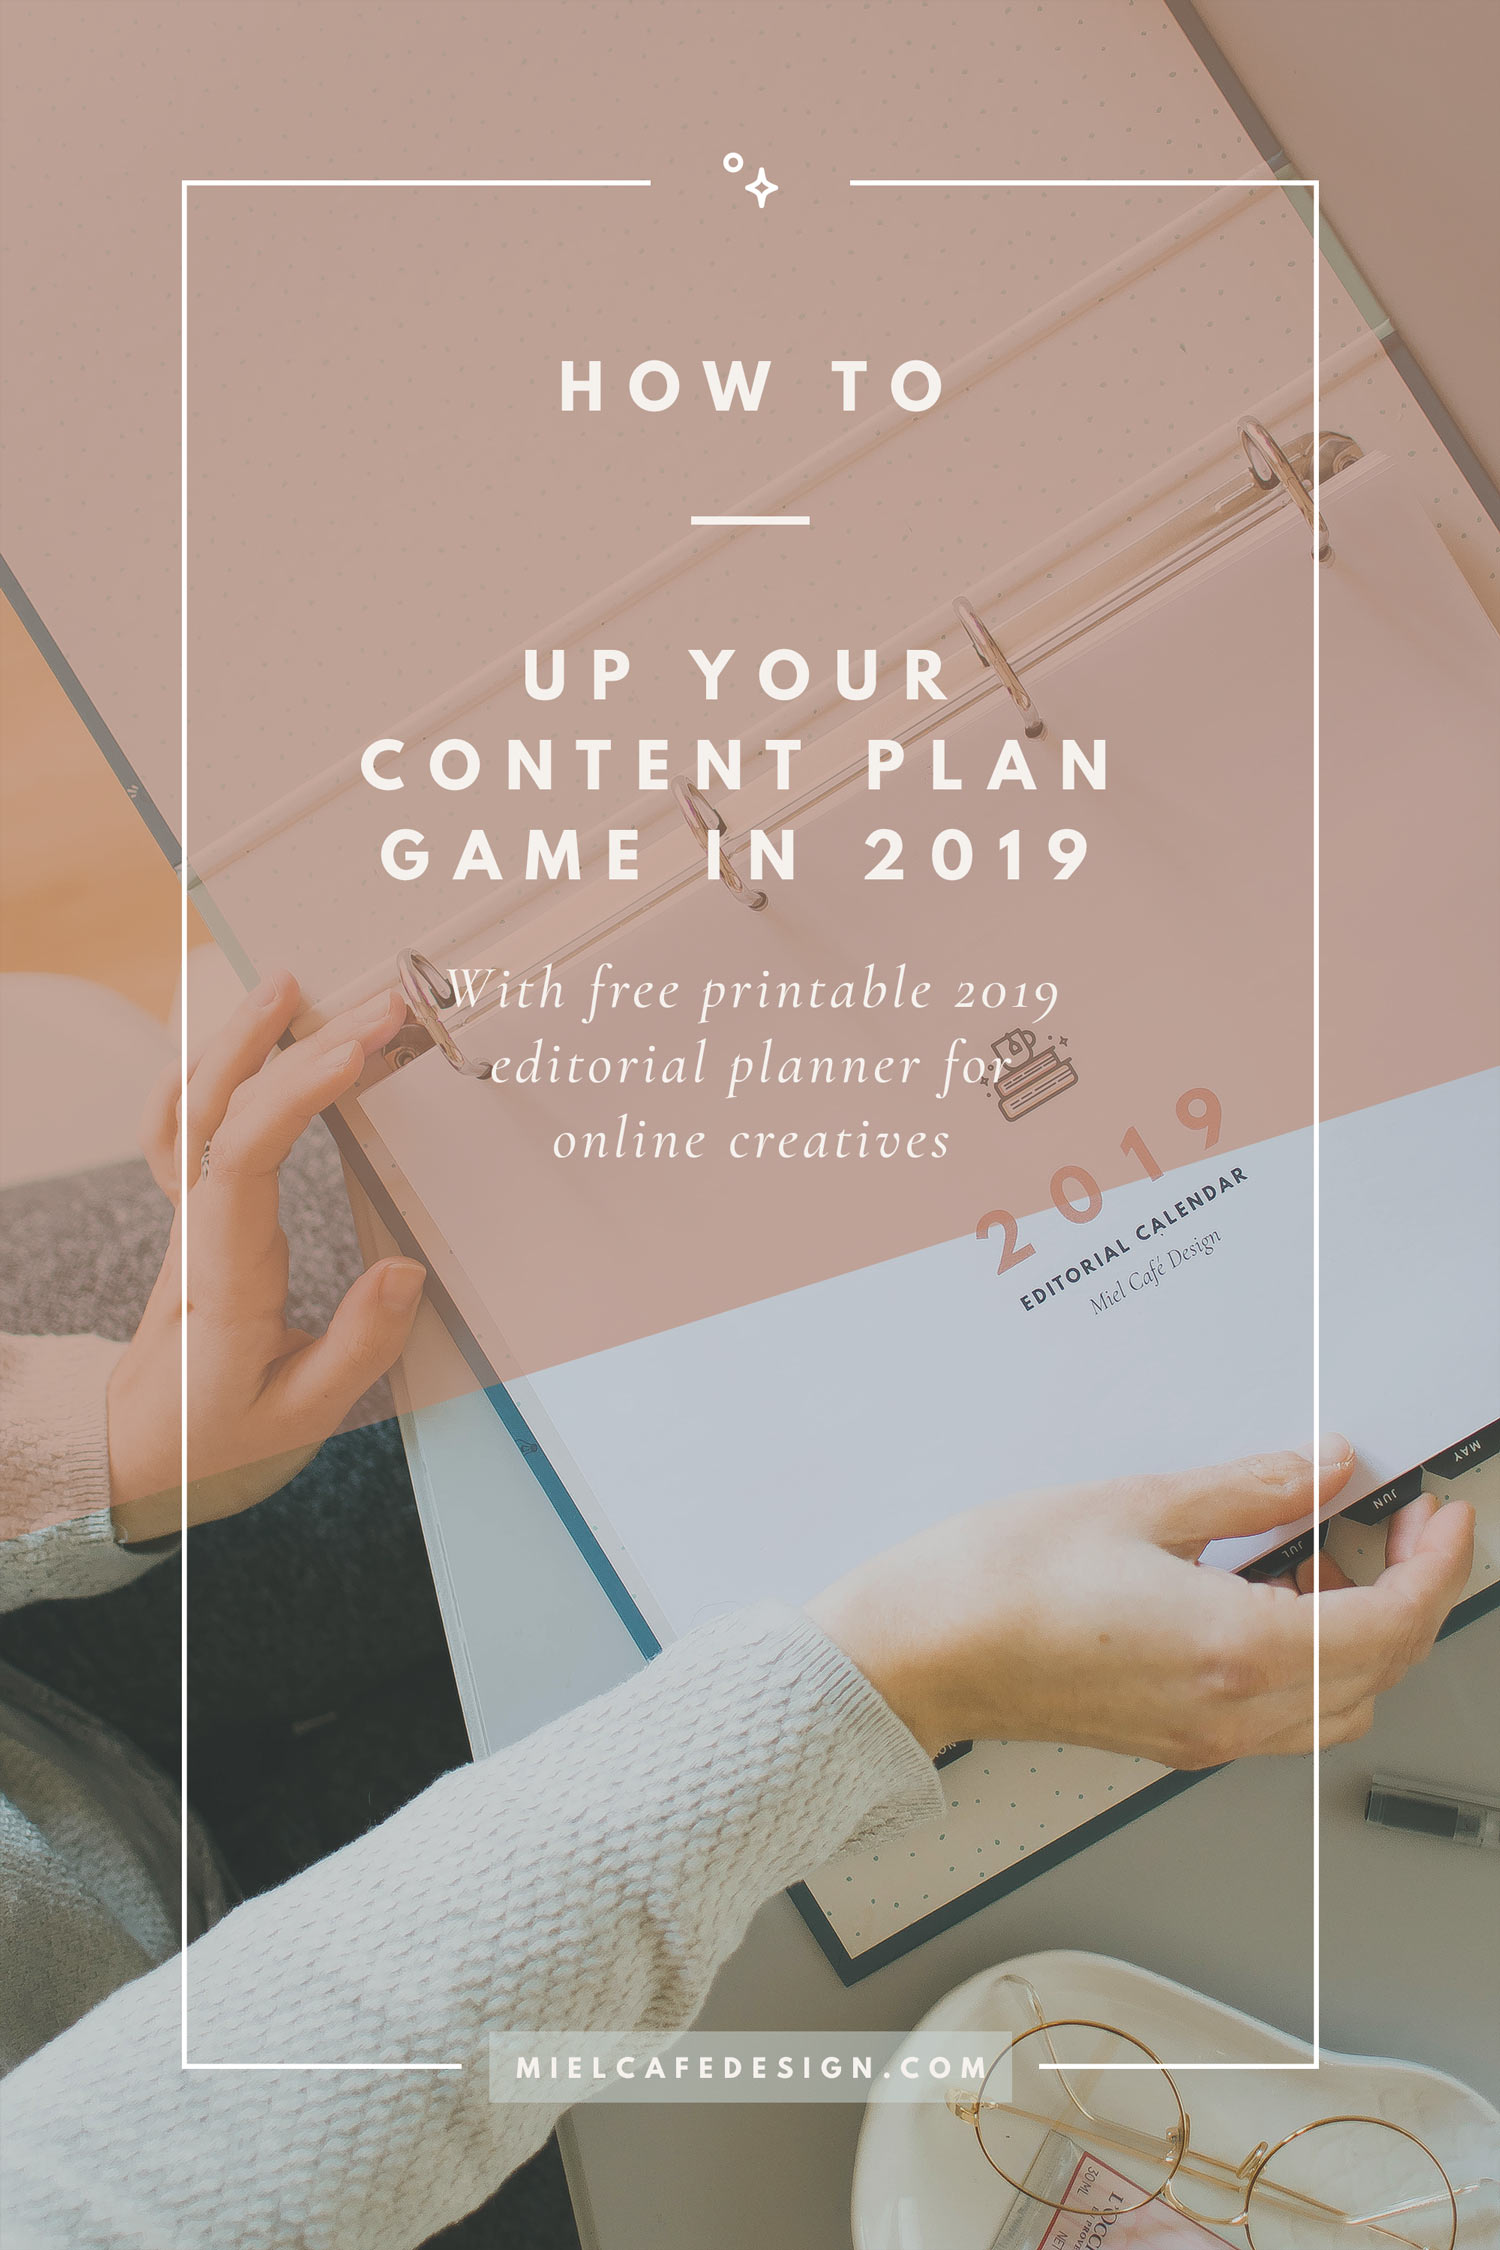 3 Steps Up Your Content Plan Game in 2019 + Free Printable 2019 Editorial Calendar